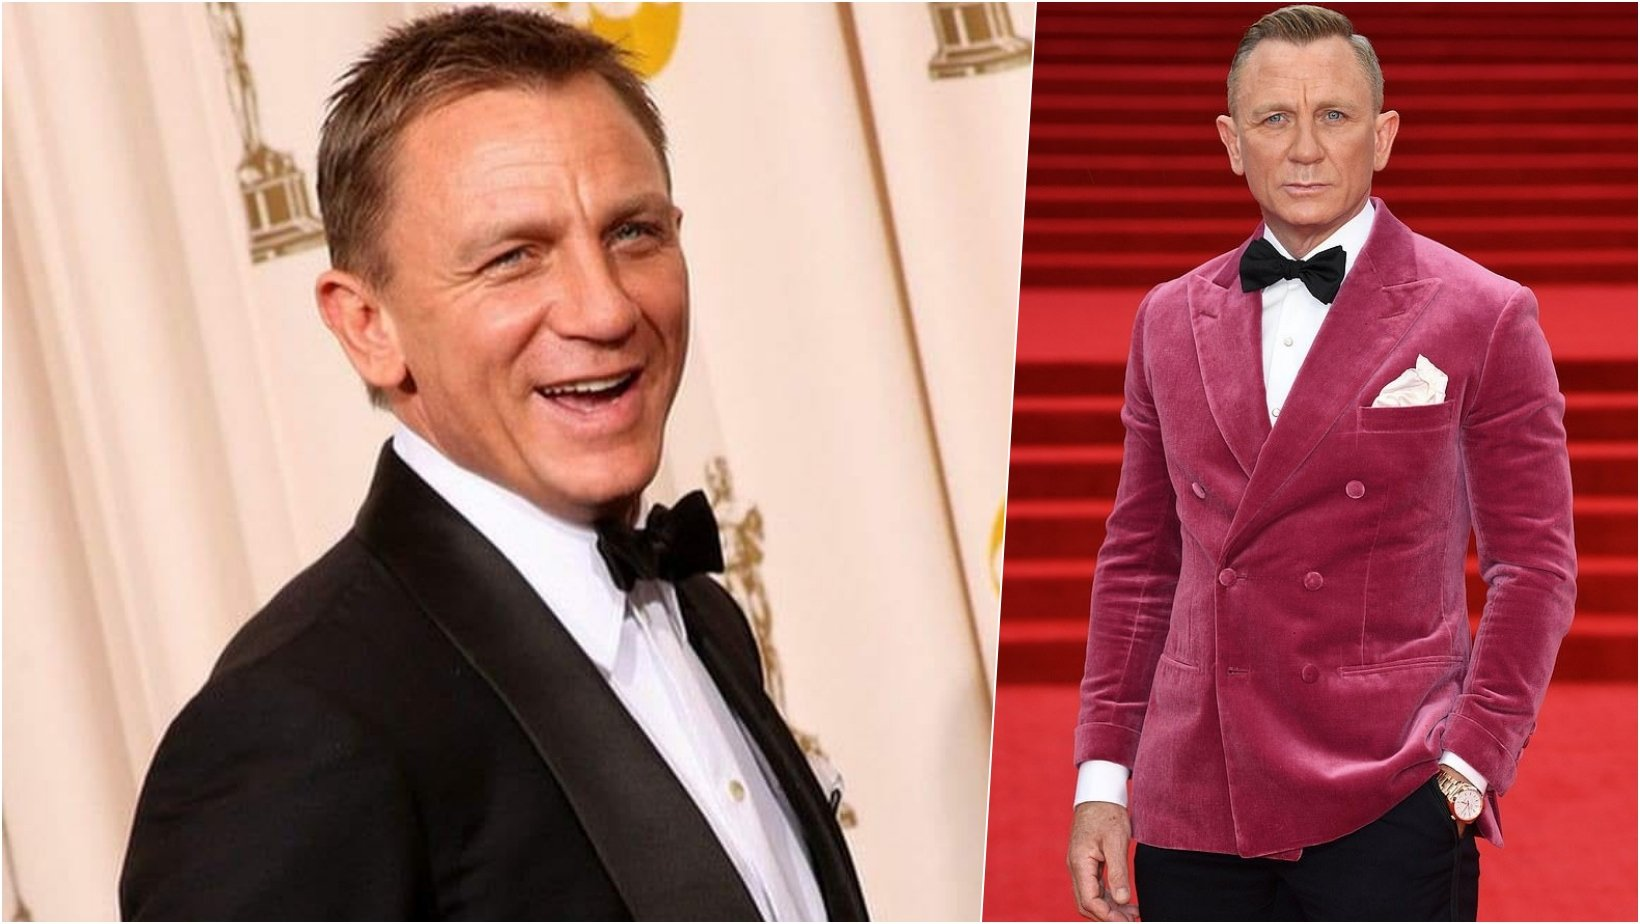 6 facebook cover 19.jpg?resize=412,232 - James Bond Actor Daniel Craig Reveals The Reason Why He Prefers Going To Gay Bars During A Night Out